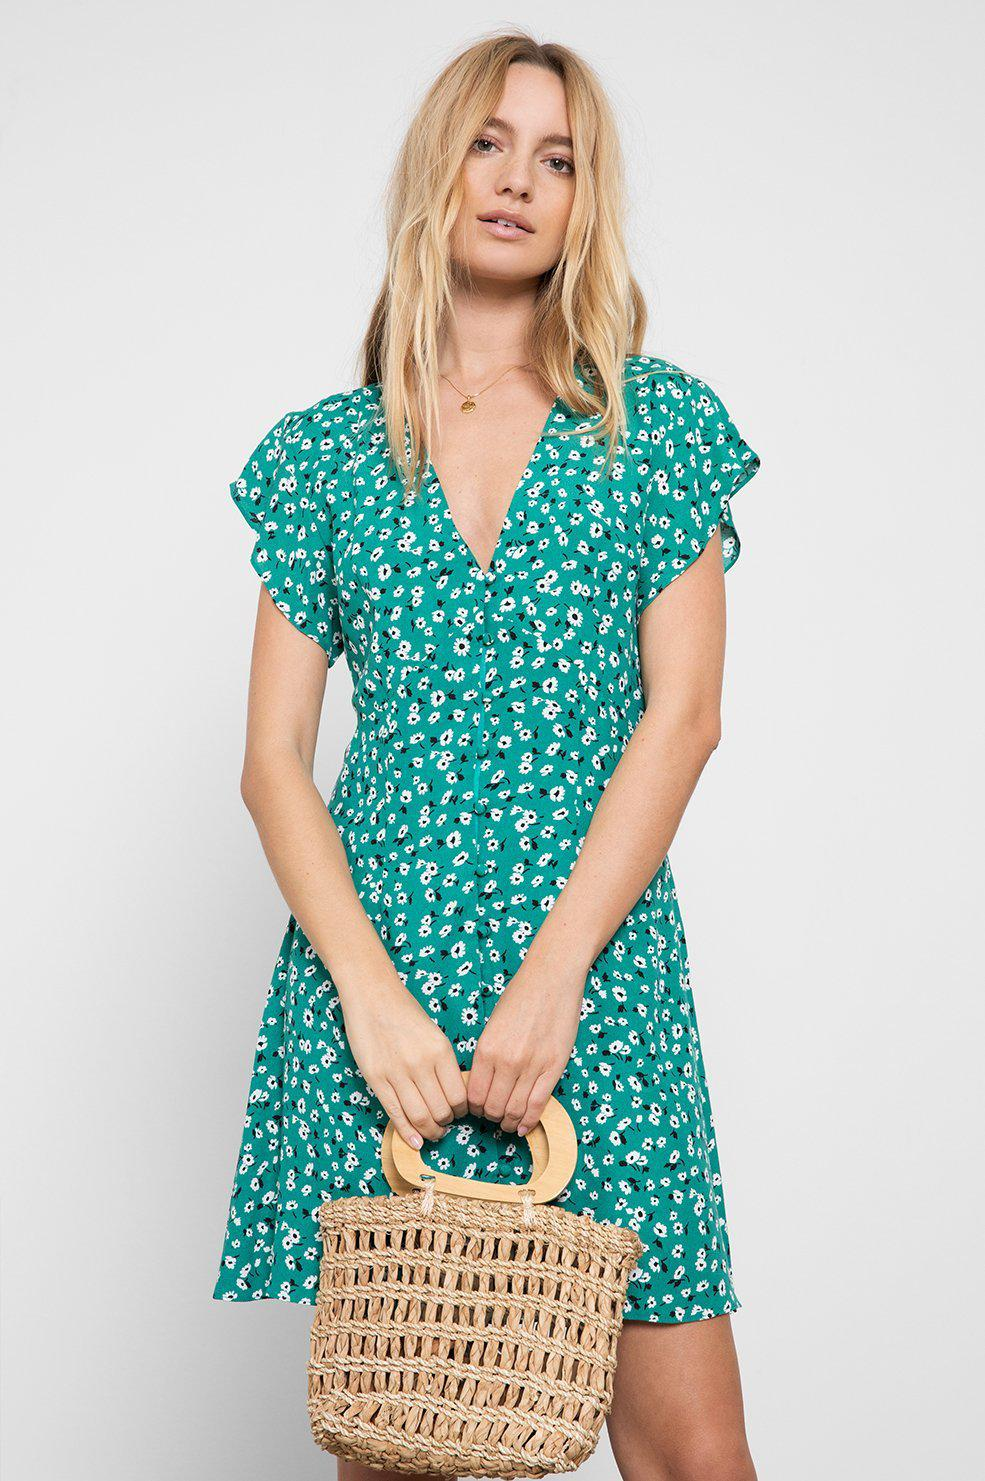 Buy Helena Sweet Pea Dress from RAILS CLOTHING at PAYA boutique